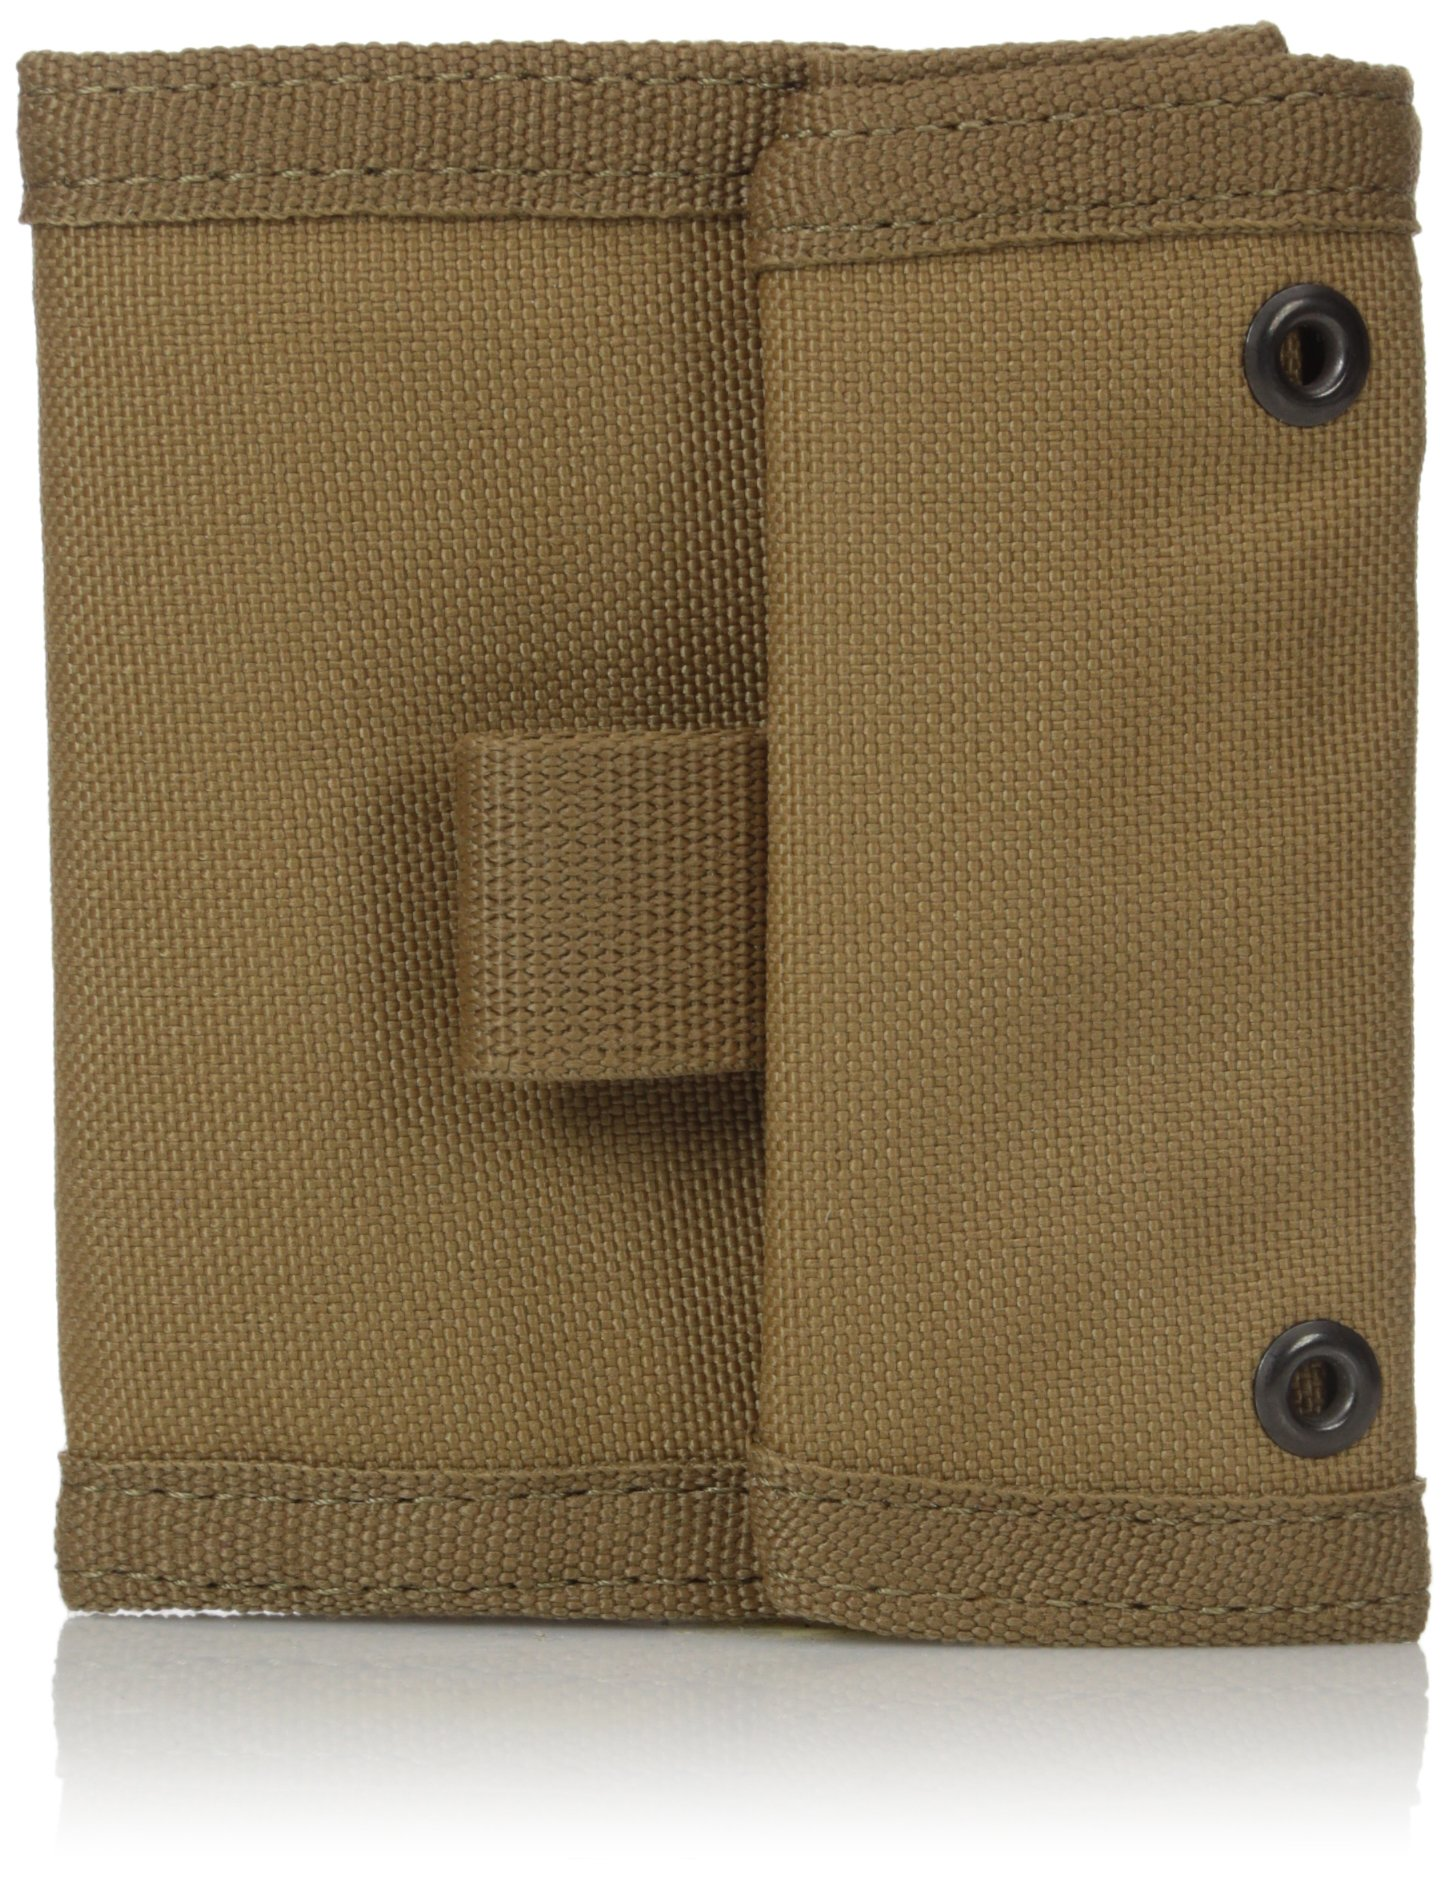 Spec-Ops Brand (100070211) T.H.E. Wallet J.R. (Coyote Brown)